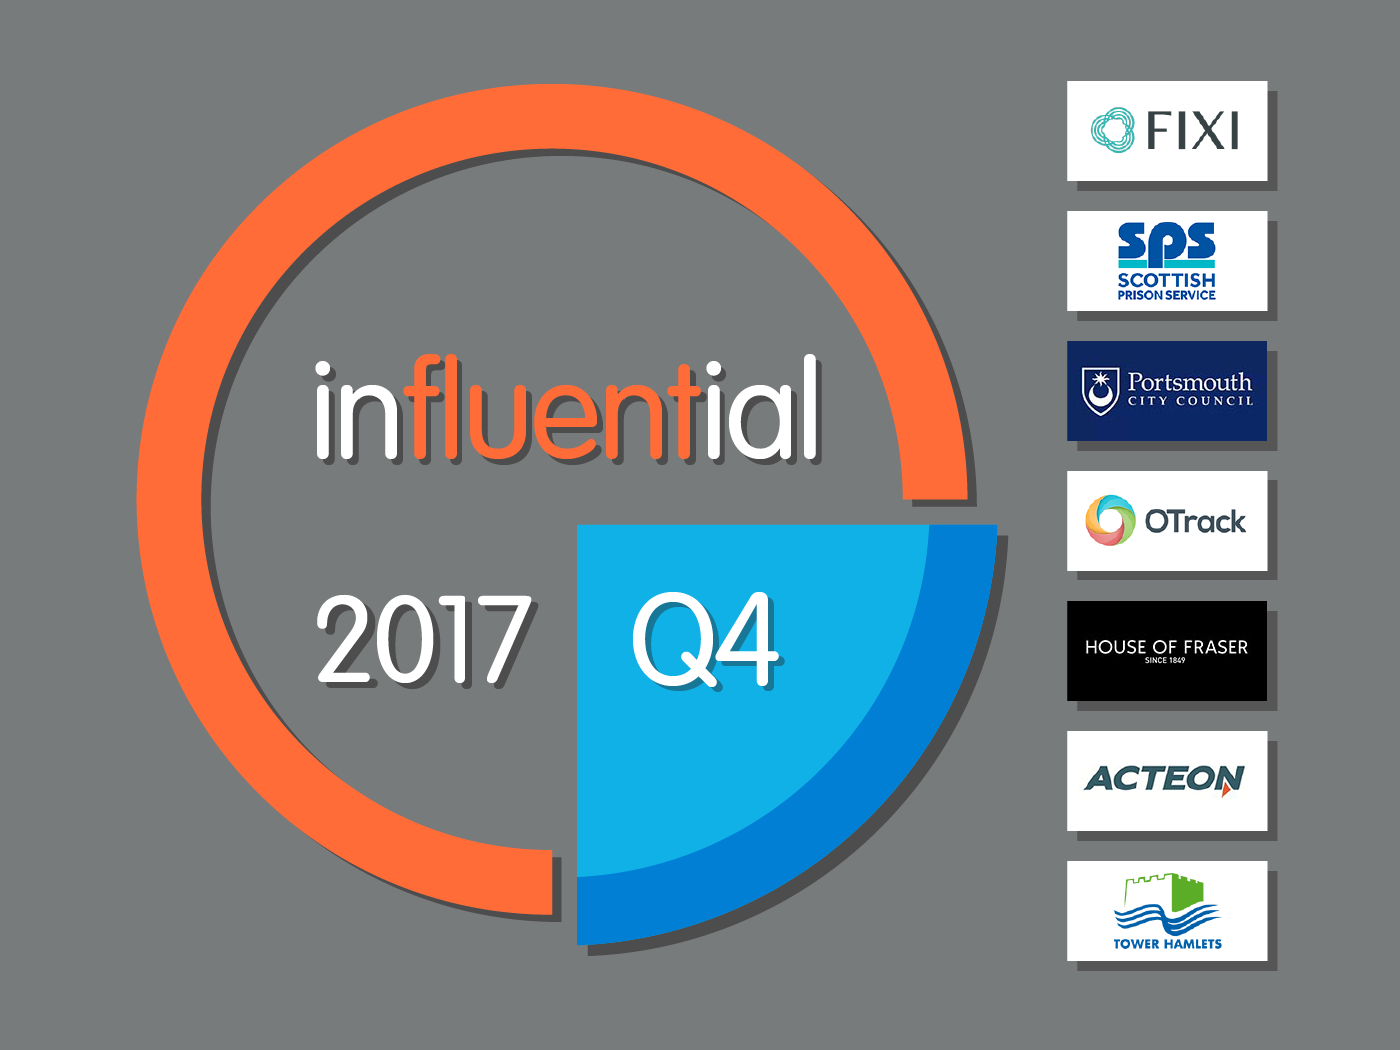 Influential New Clients in Q4, 2017